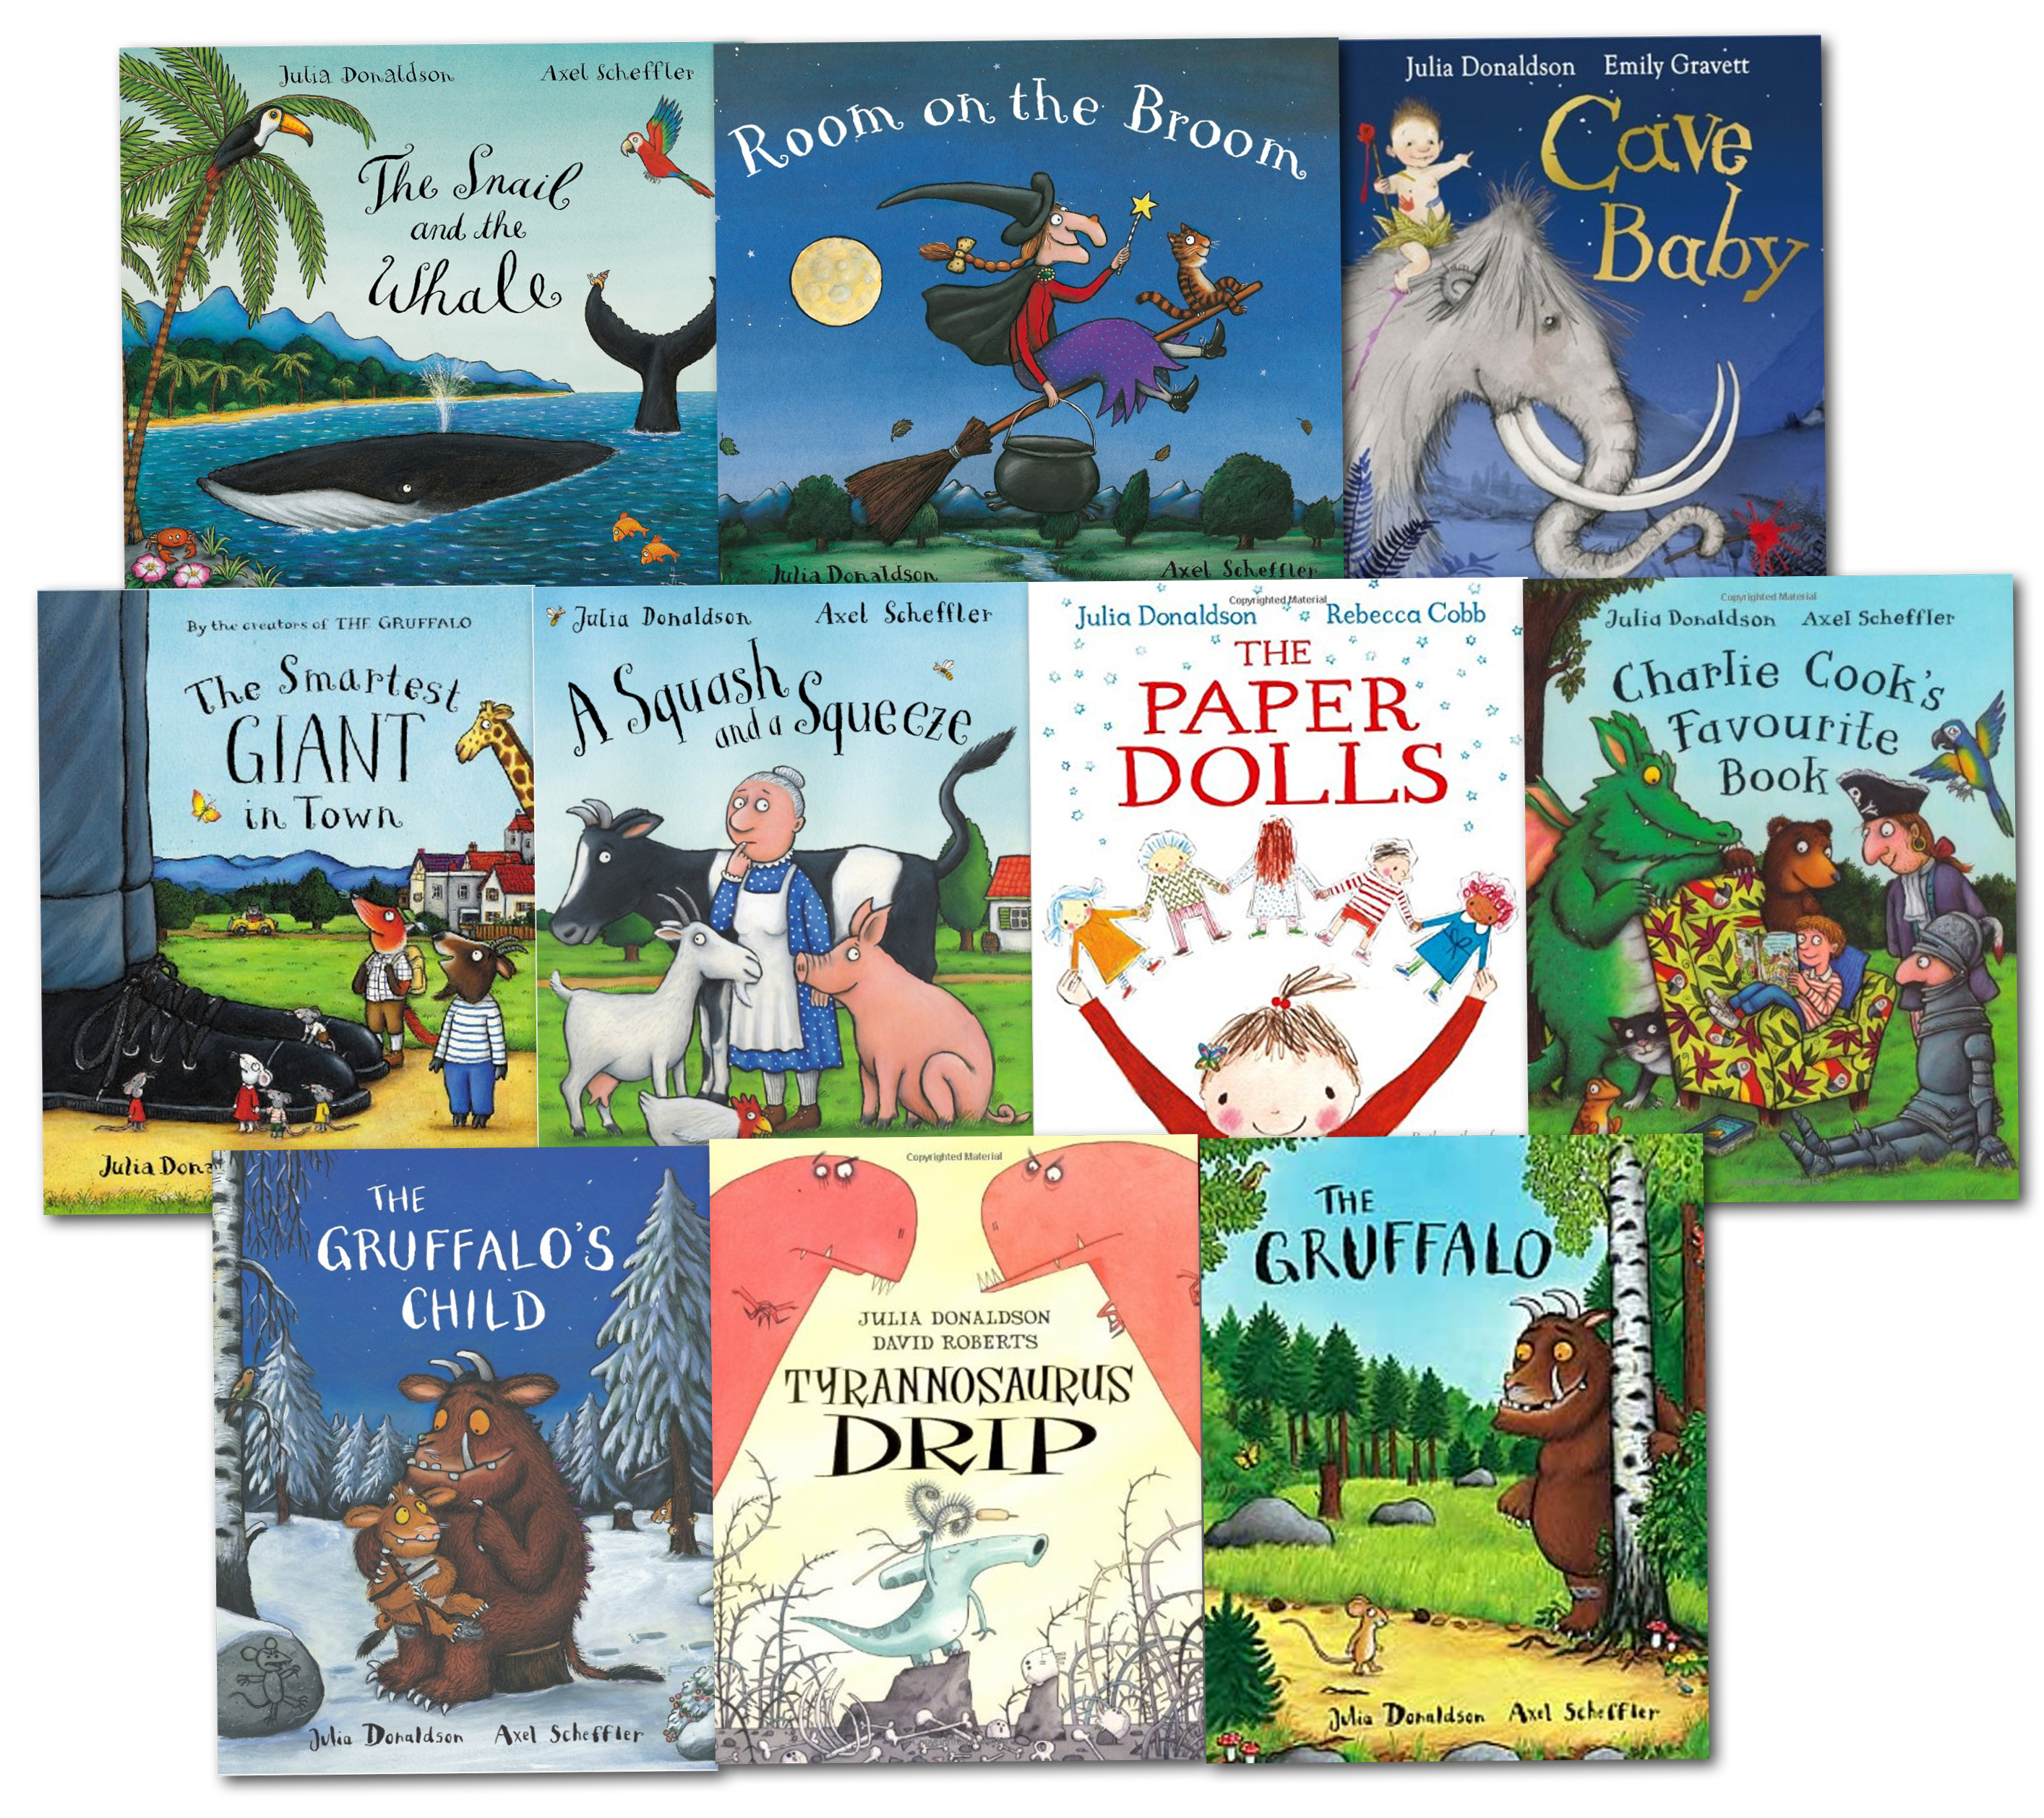 understanding childrens literature key essays Having successfully completed this module, you will be able to demonstrate knowledge and understanding of: what characterises a literary work written for children key theories relevant to the genre forms and writing techniques demonstrated in the work selected the issues relating to children's literature, such as.